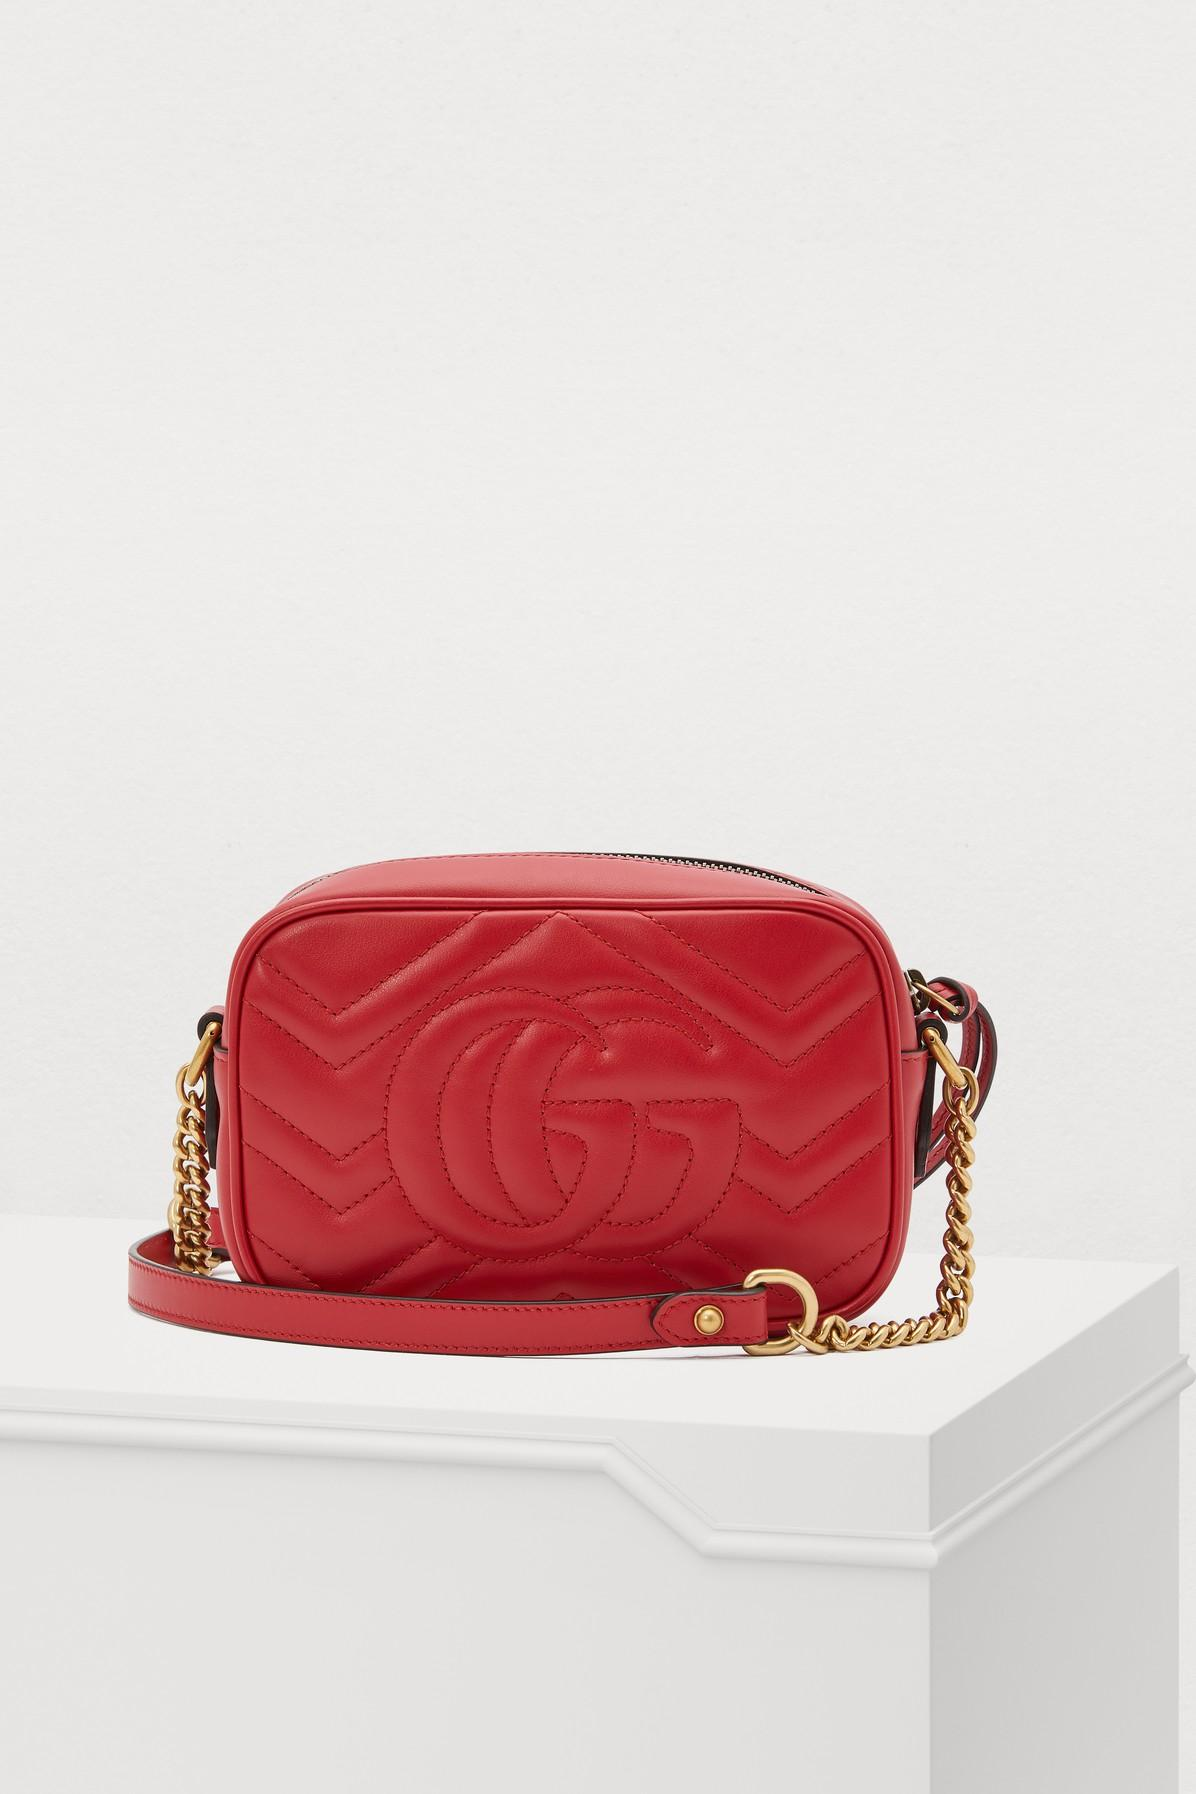 89d6b24a26e806 Gucci GG Marmont Sm Crossbody Bag in Red - Lyst